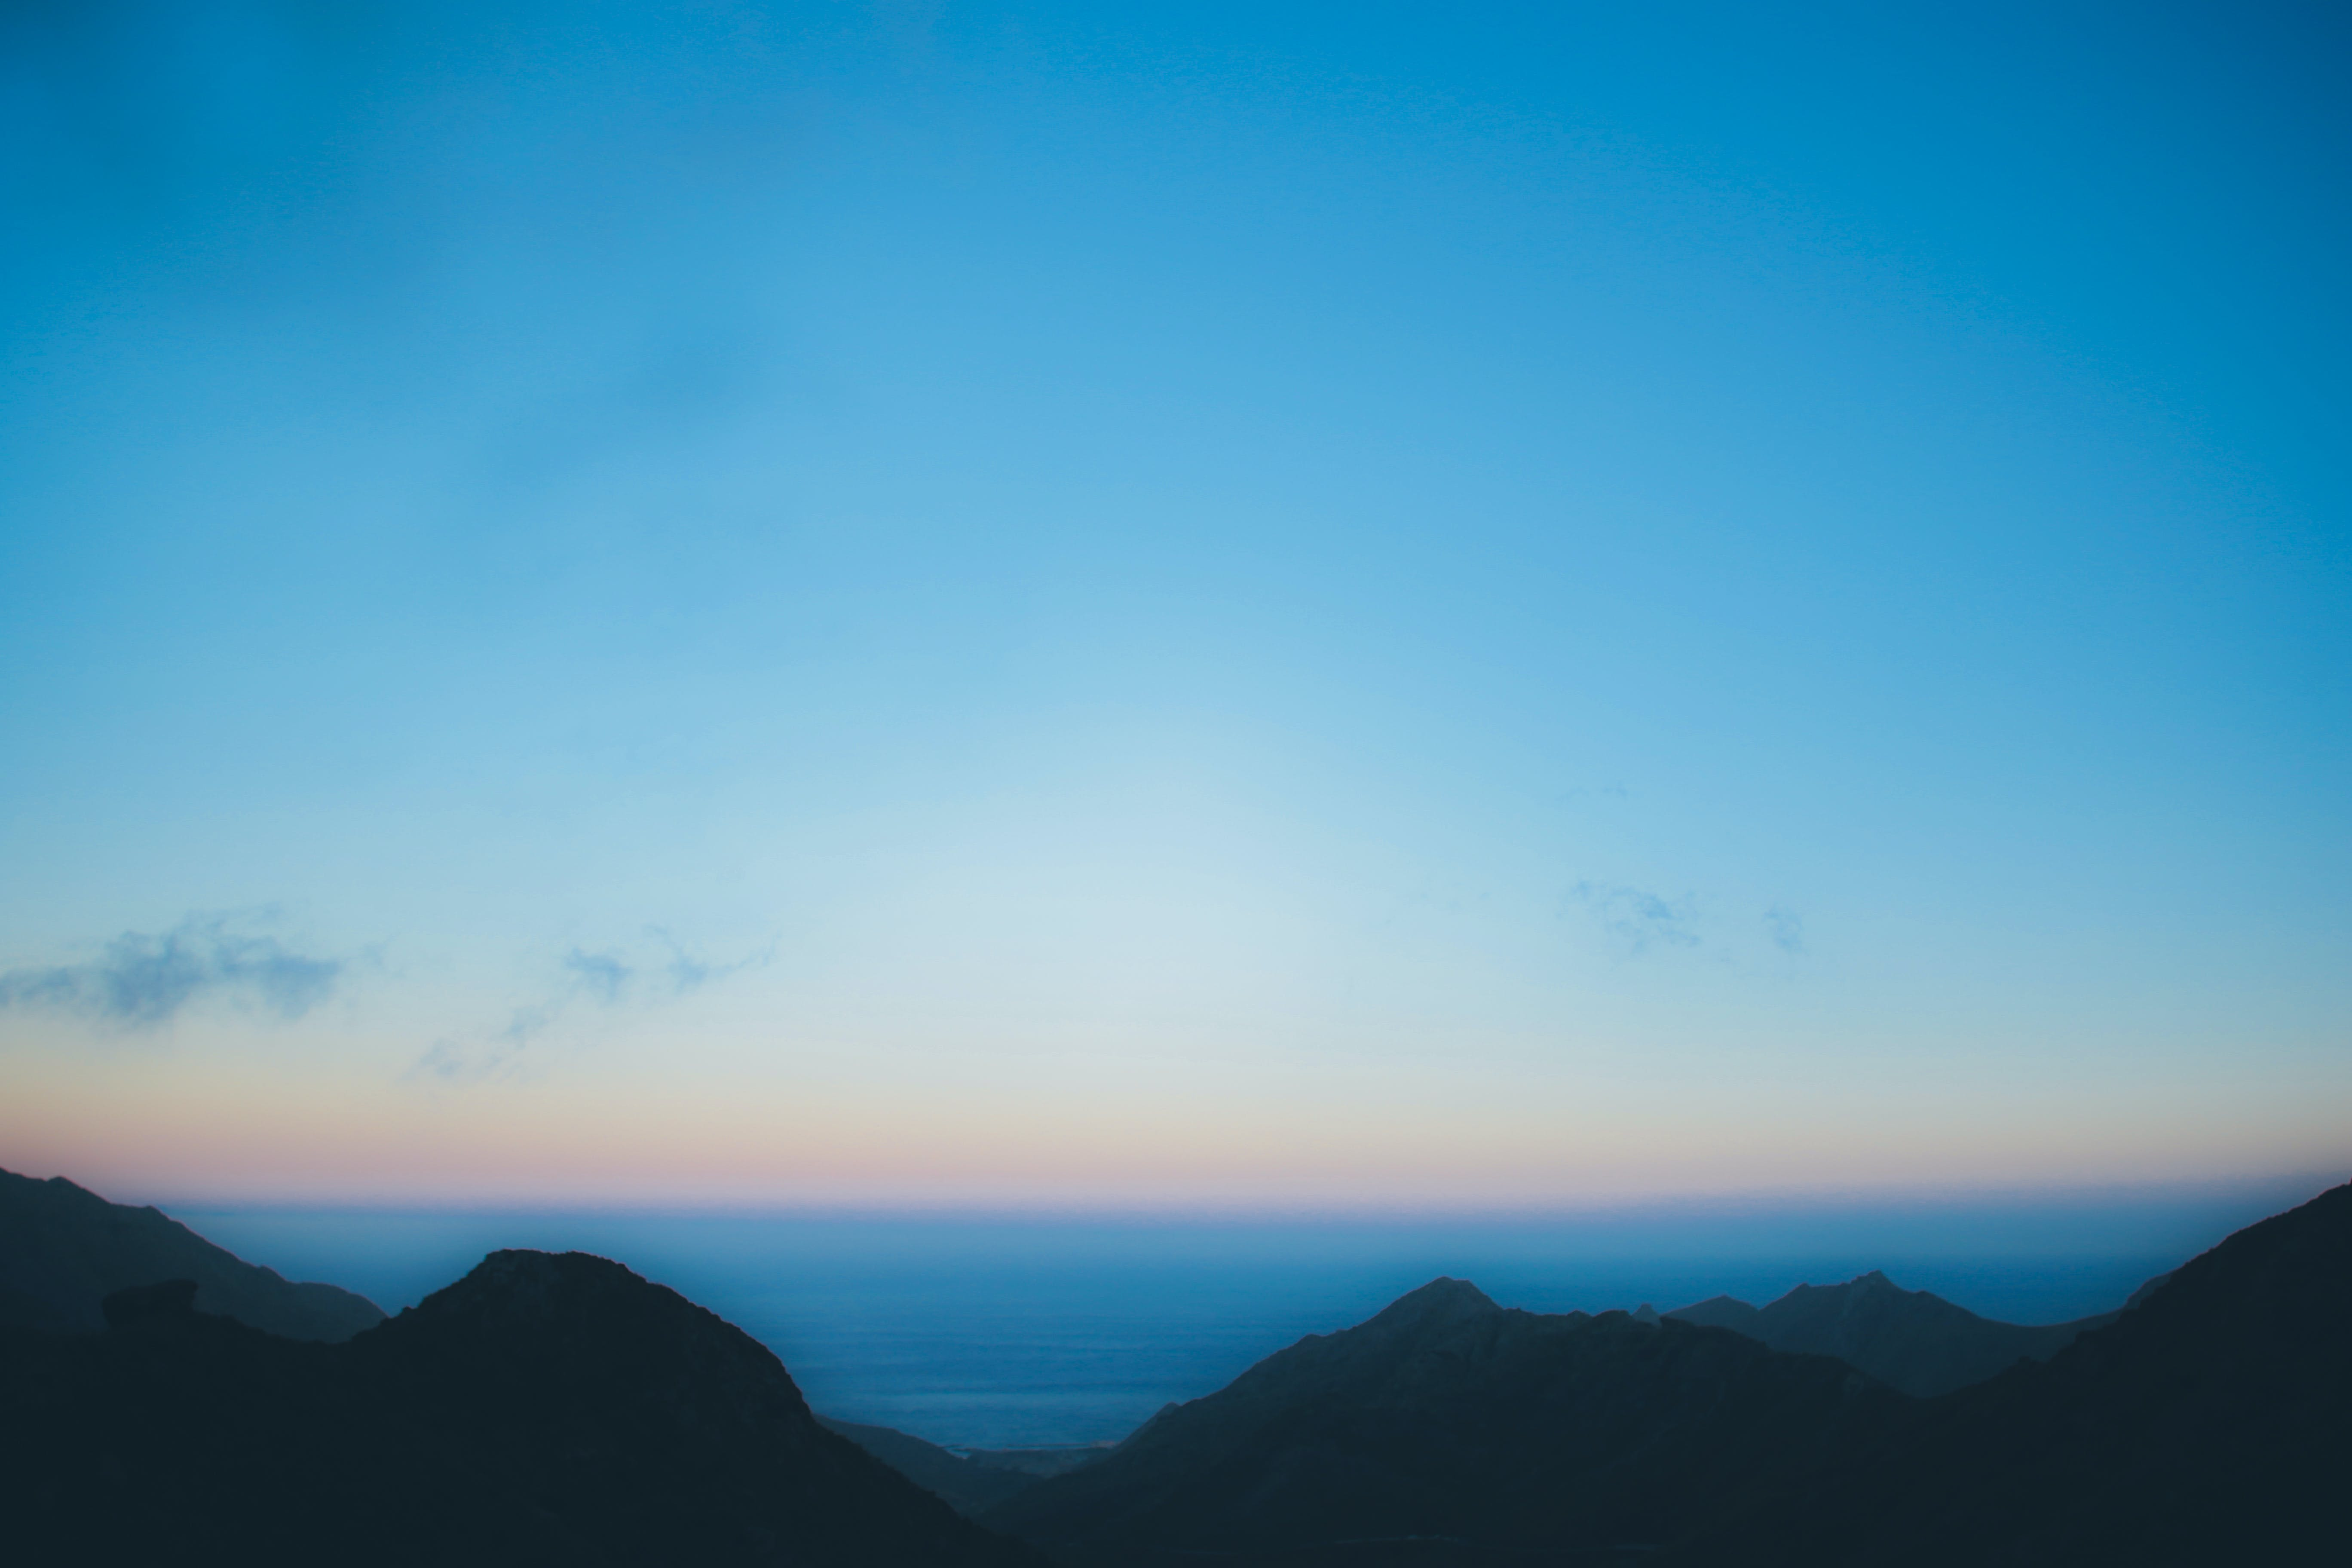 Silhouette Of Mountain Under Blue Sky